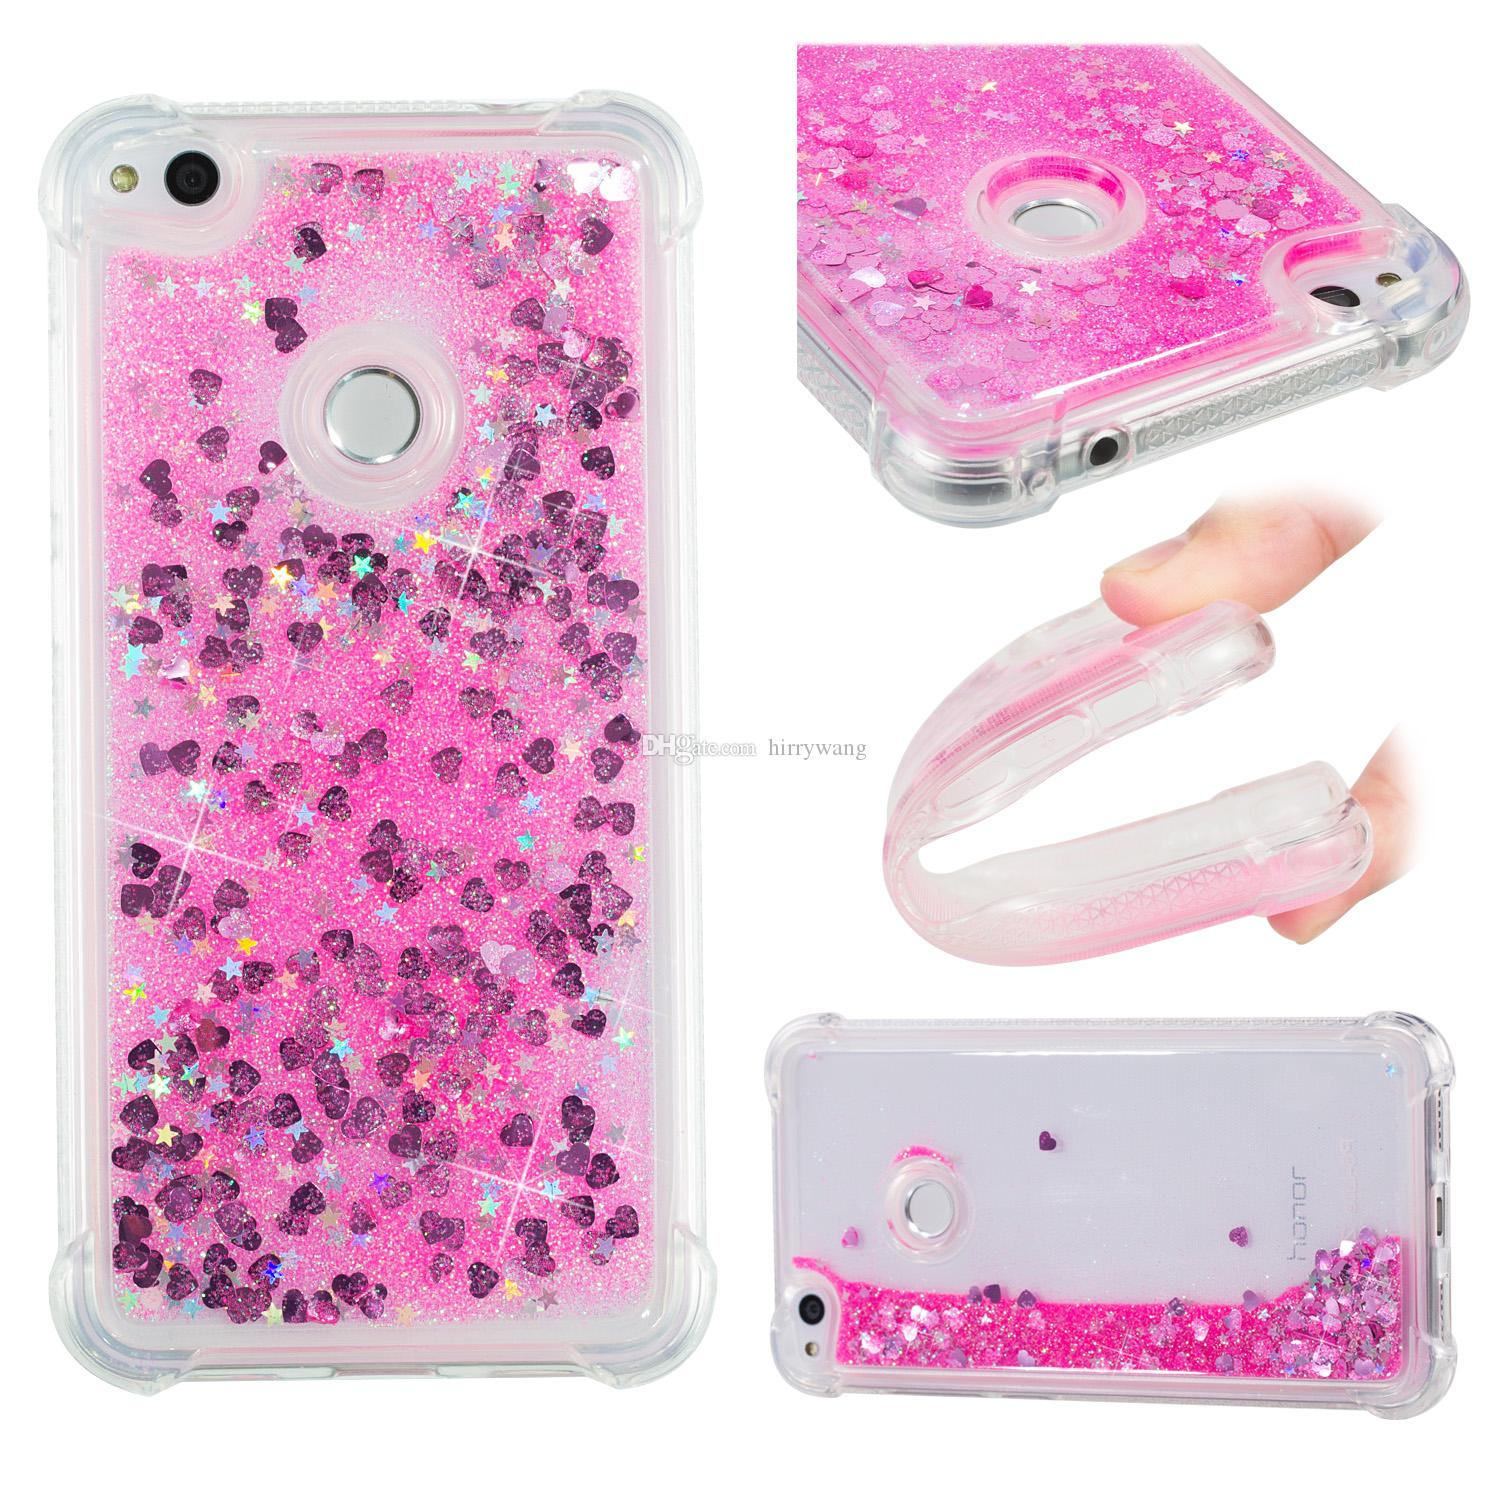 Heart Star Liquid Glitter Quicksand Floating Flowing Phone Case for Huawei P8 Lite 2017, P10 Lite, Moto E4, Moto G5S